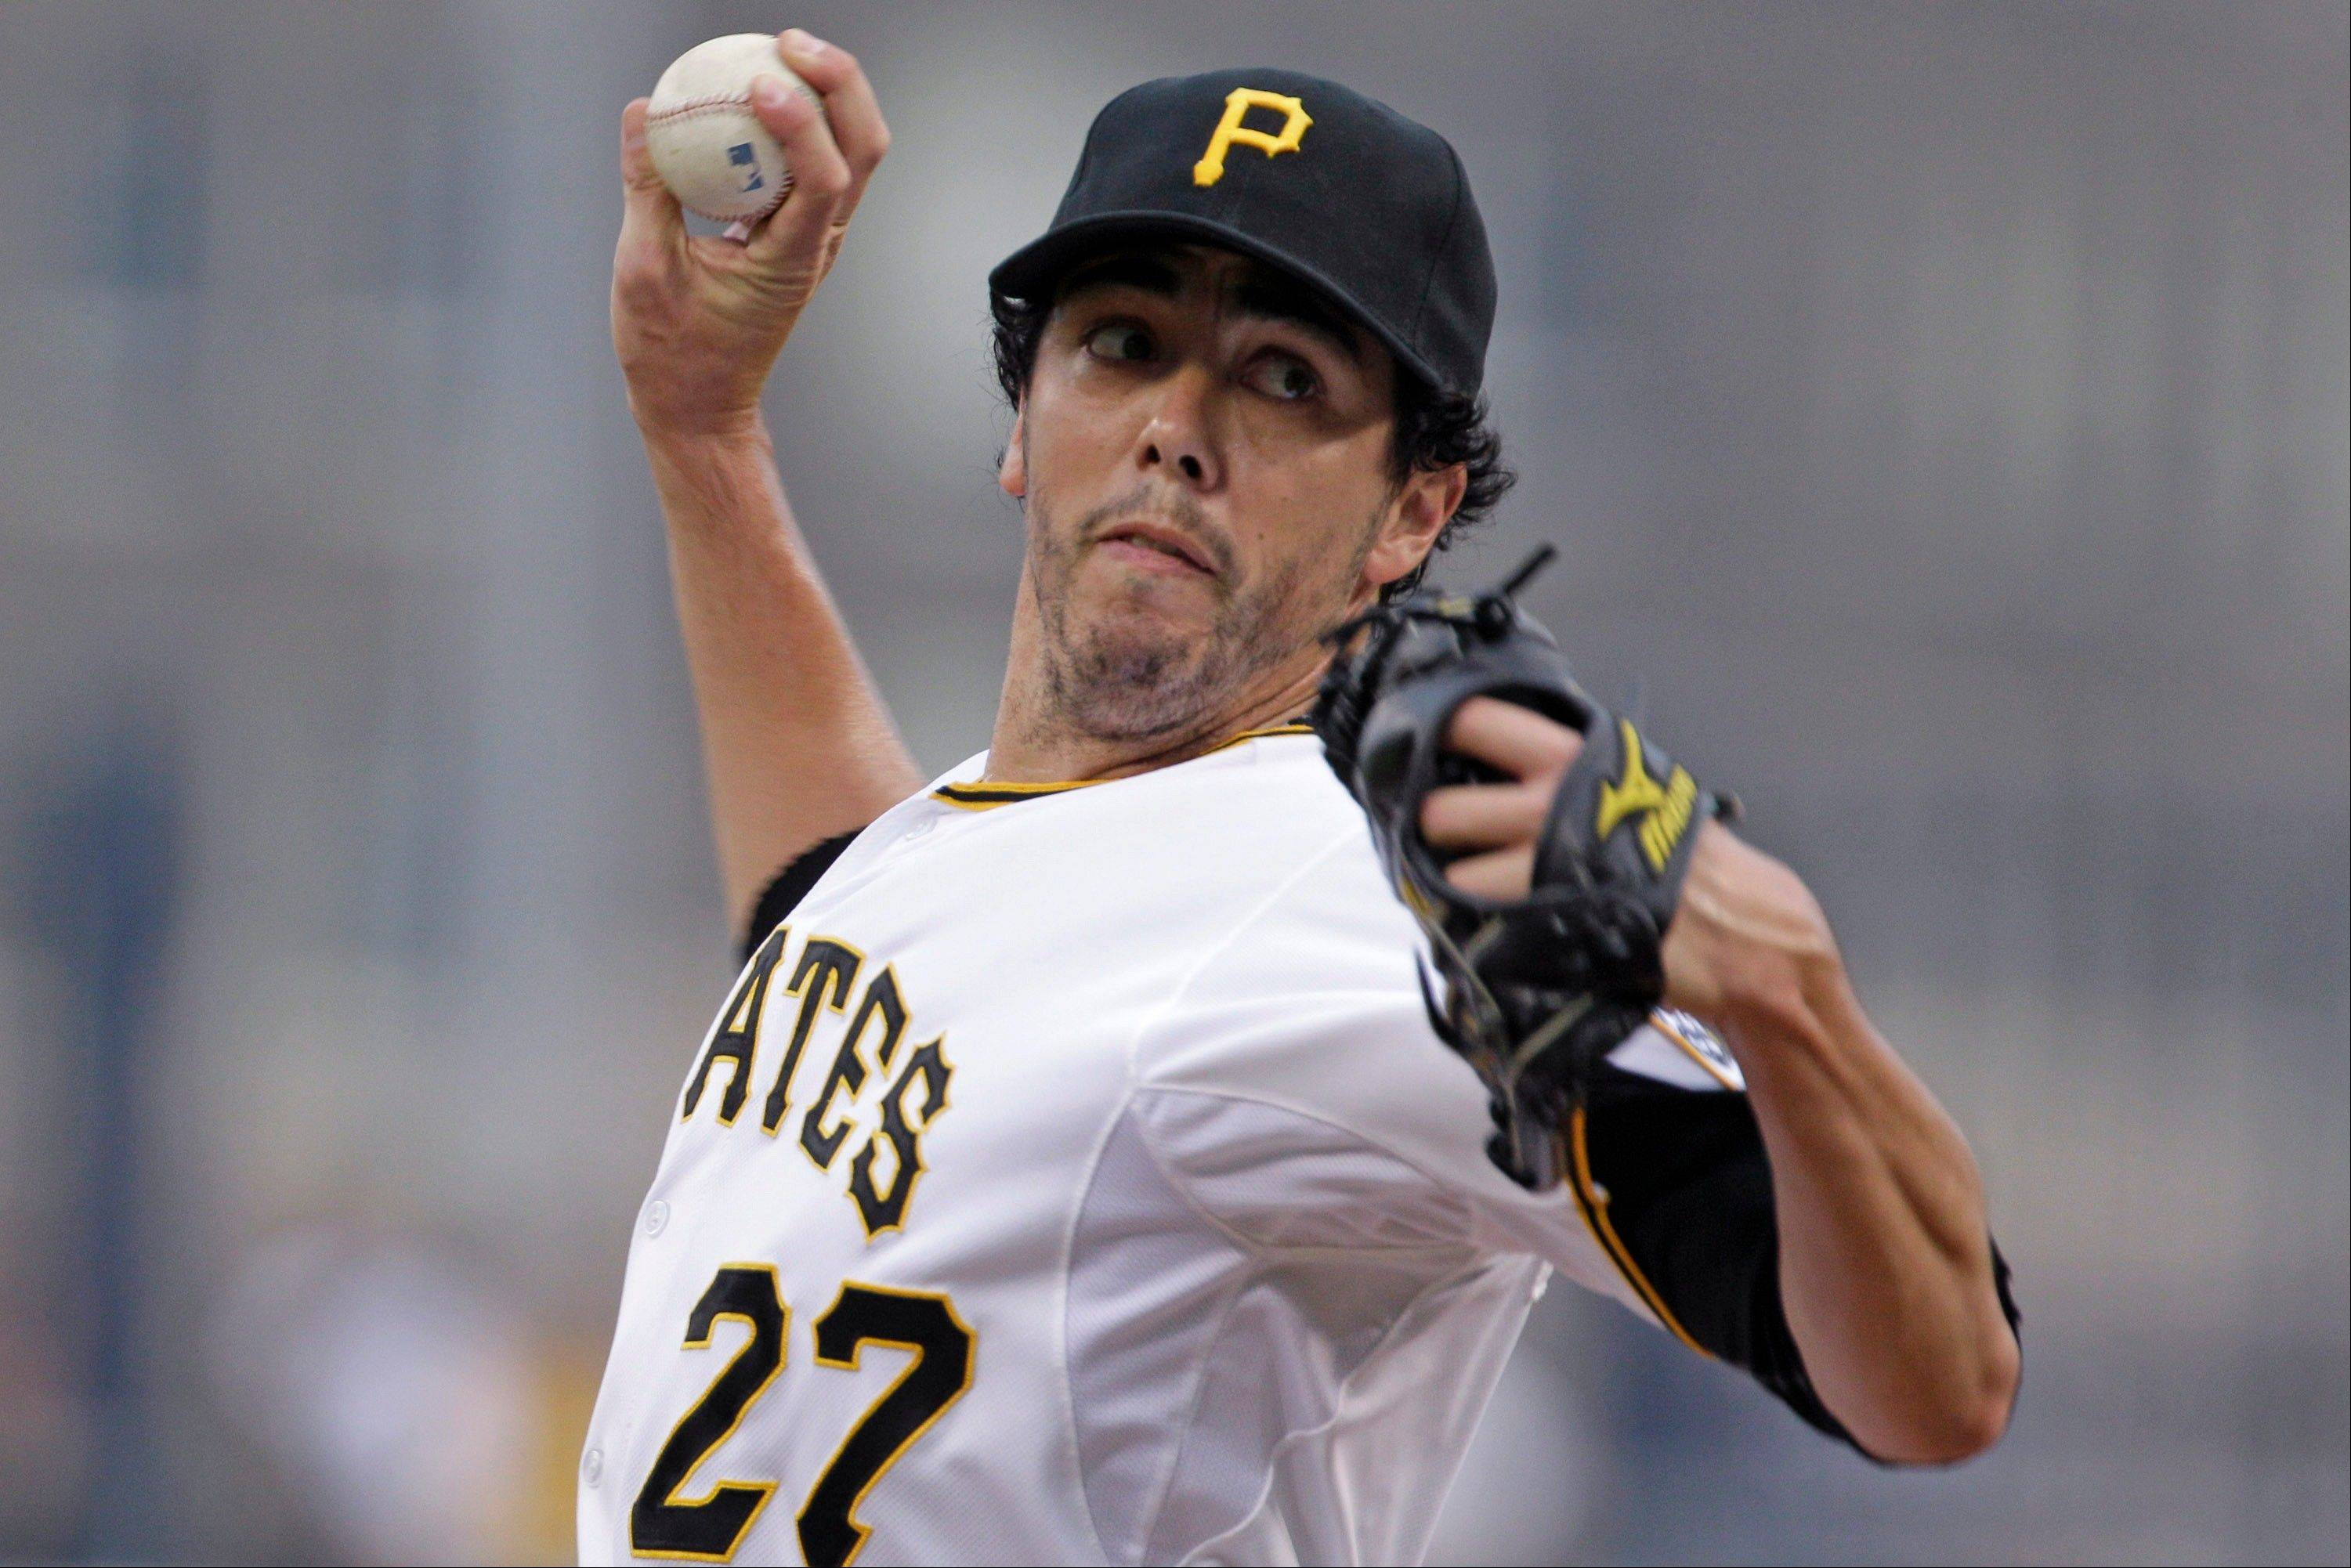 Pittsburgh Pirates pitcher Jeff Karstens delivers Thursday during the first inning against the Houston Astros in Pittsburgh.